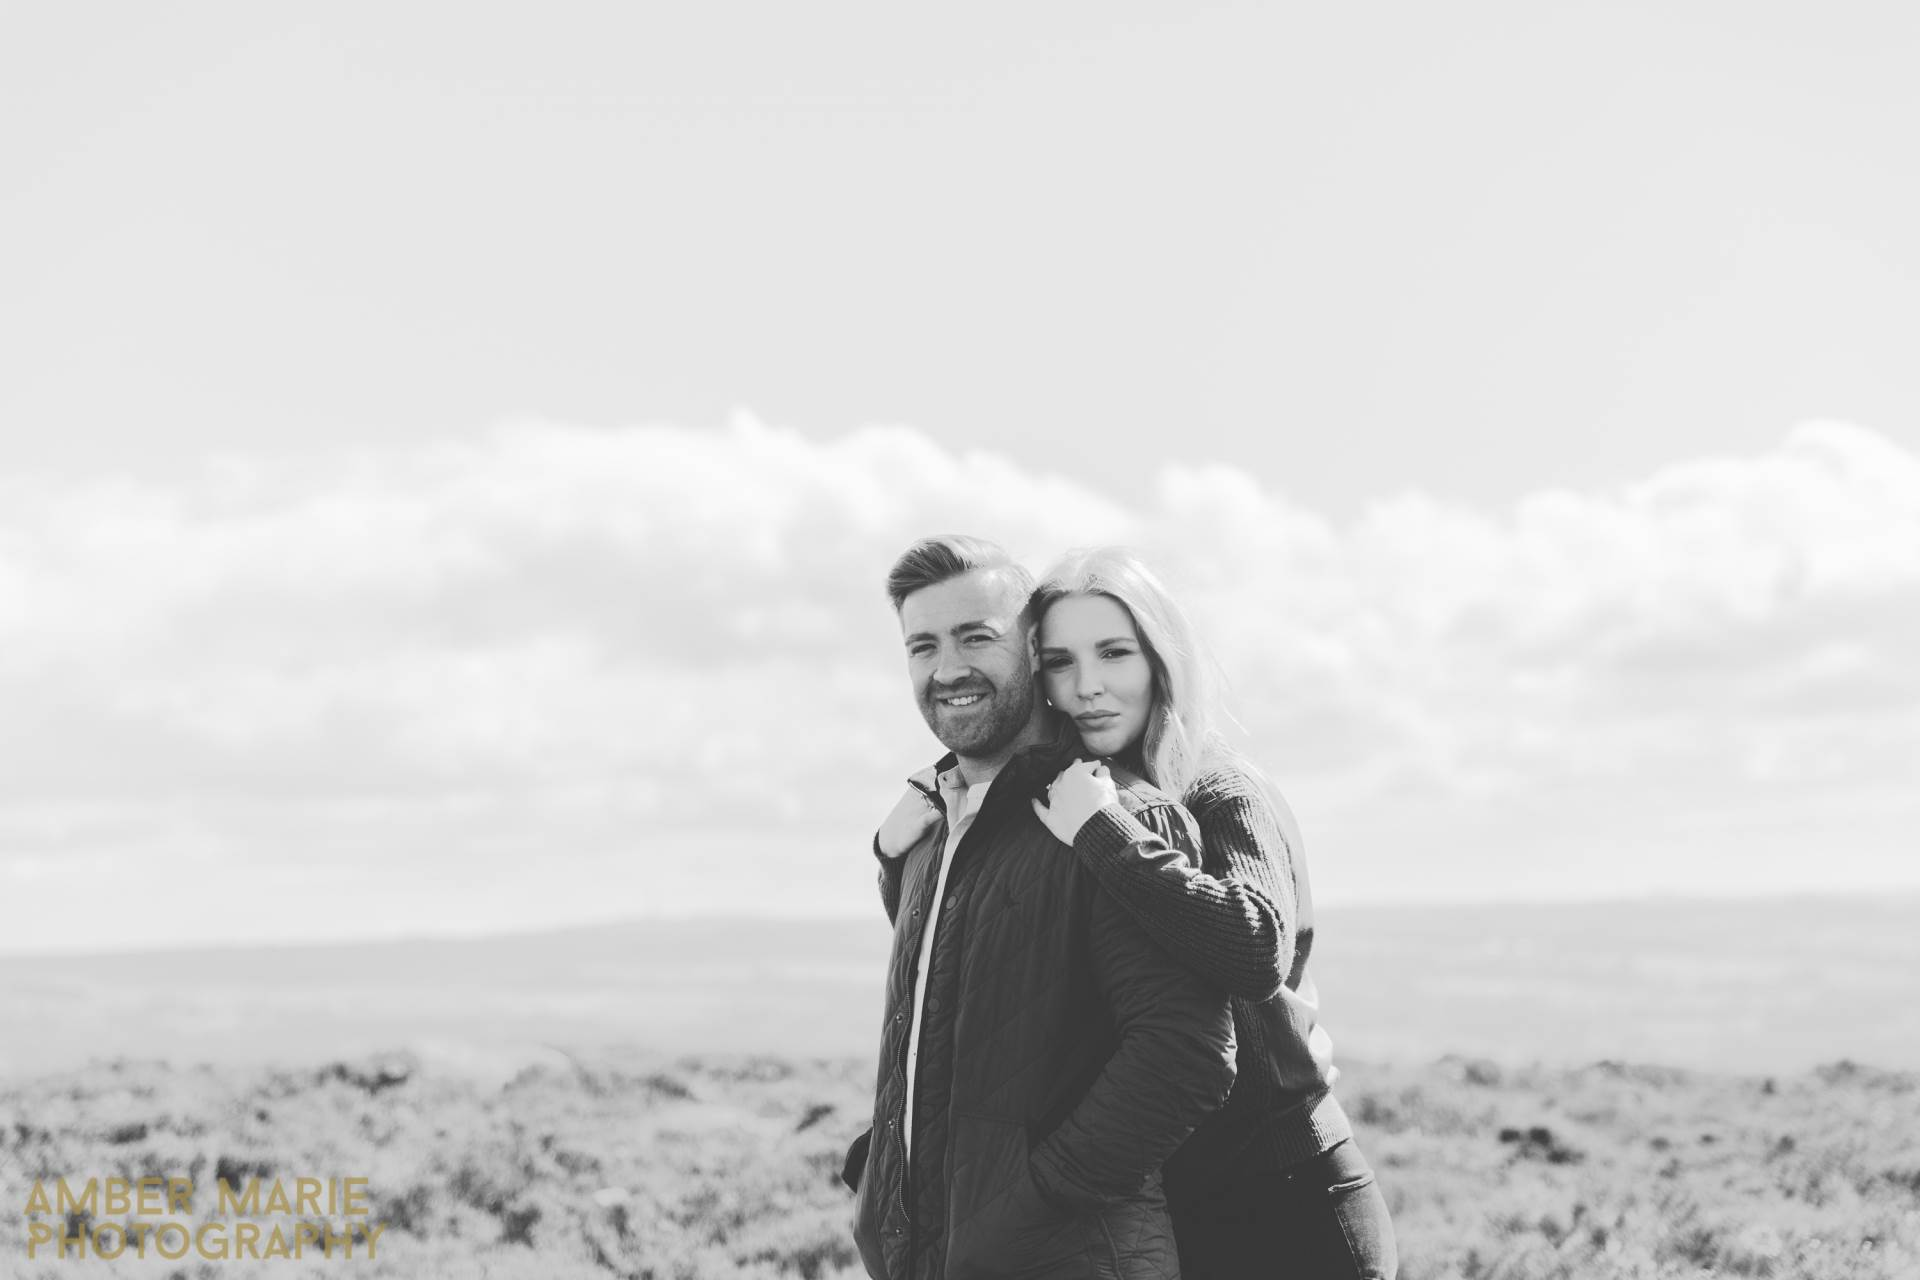 should-we-have-a-engagement-shoot-amber-marie-photography-creative-cotswolds-wedding-photographers00004